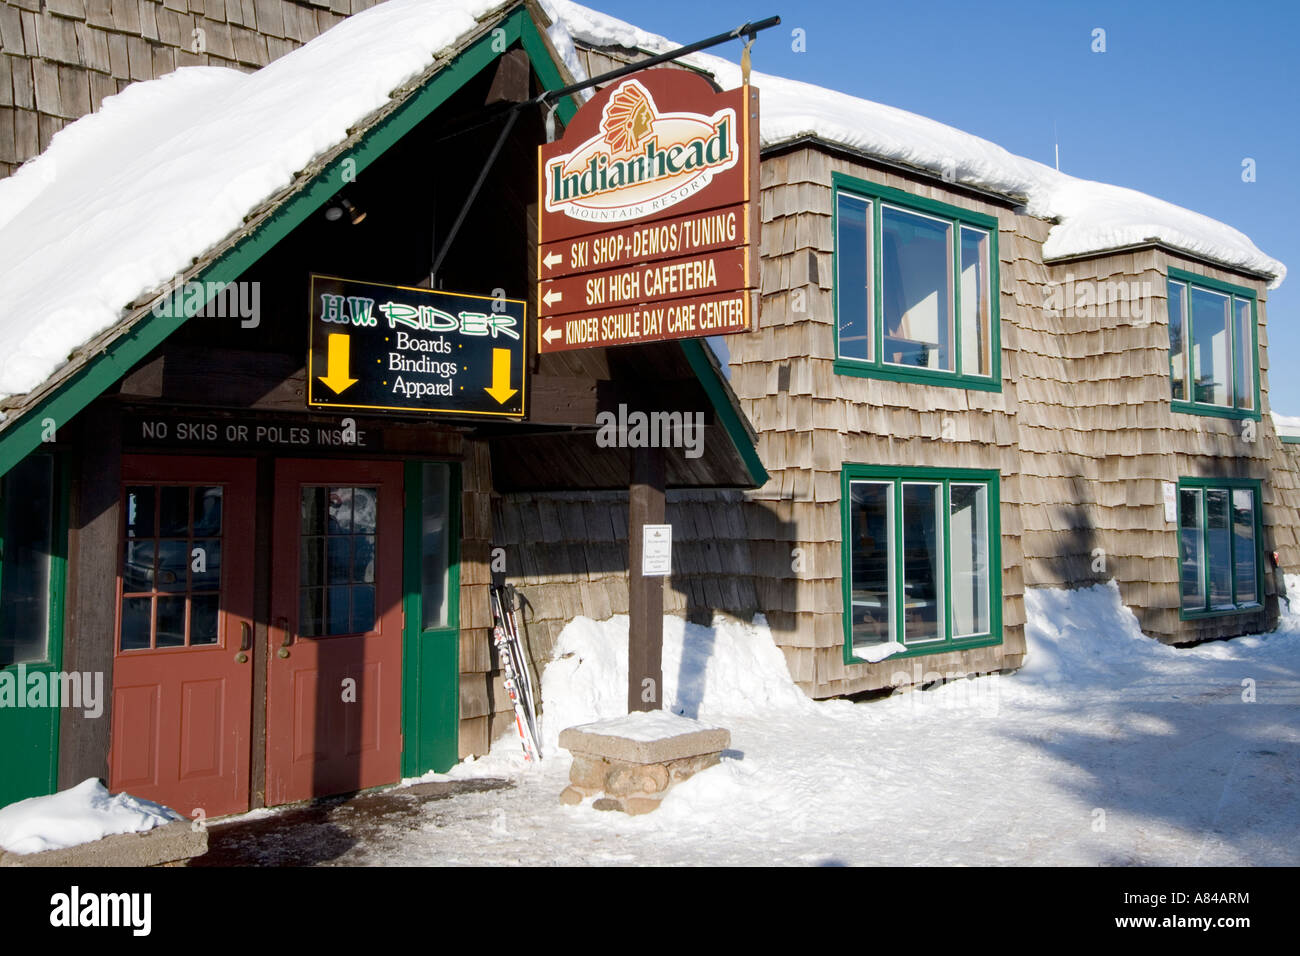 ski shop and cafeteria building. indianhead mountain ski resort